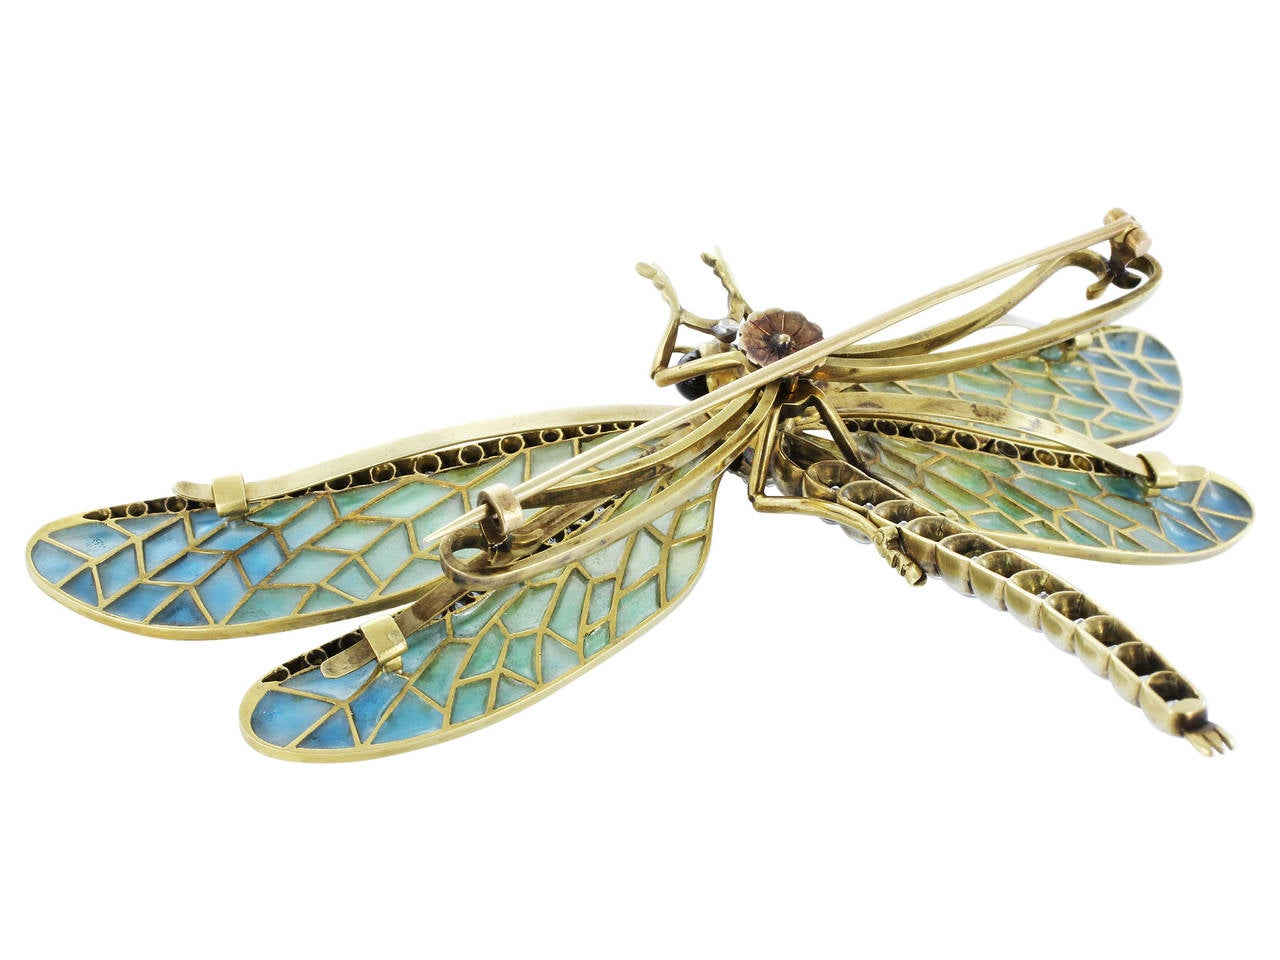 Antique Plique-a-Jour Dragonfly Pin In Excellent Condition For Sale In Chestnut Hill, MA